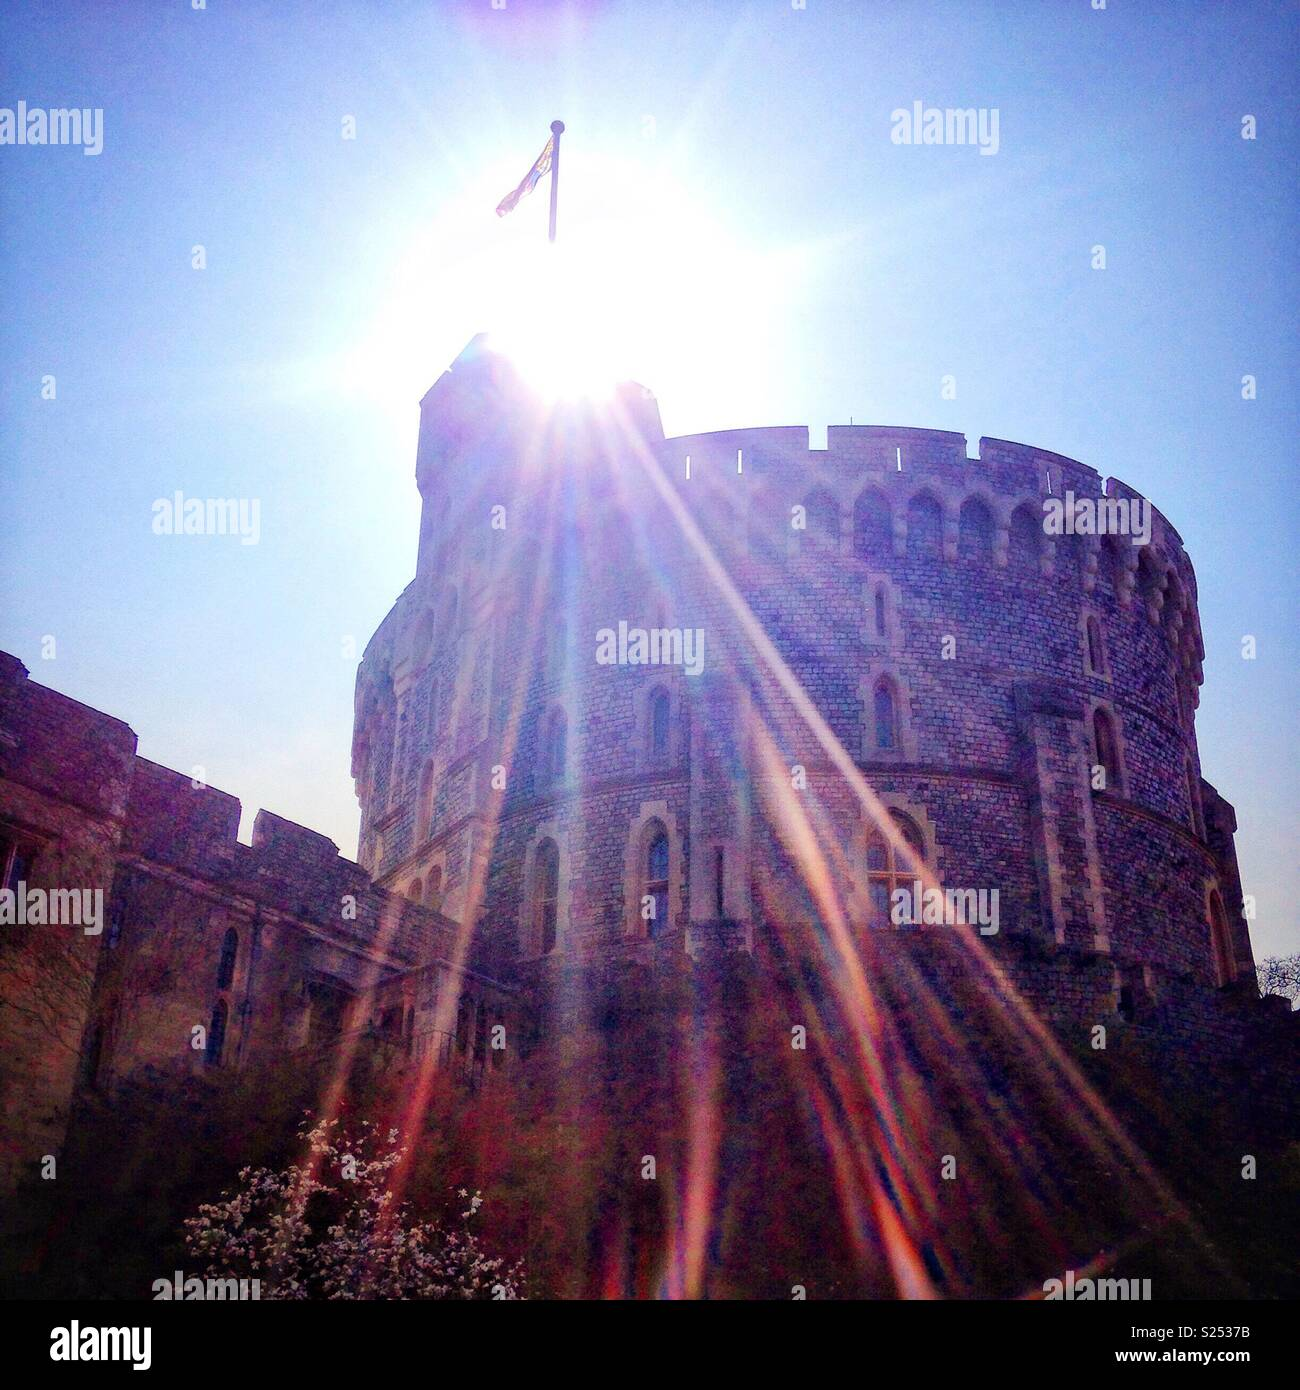 Windsor Castle in the sun. - Stock Image